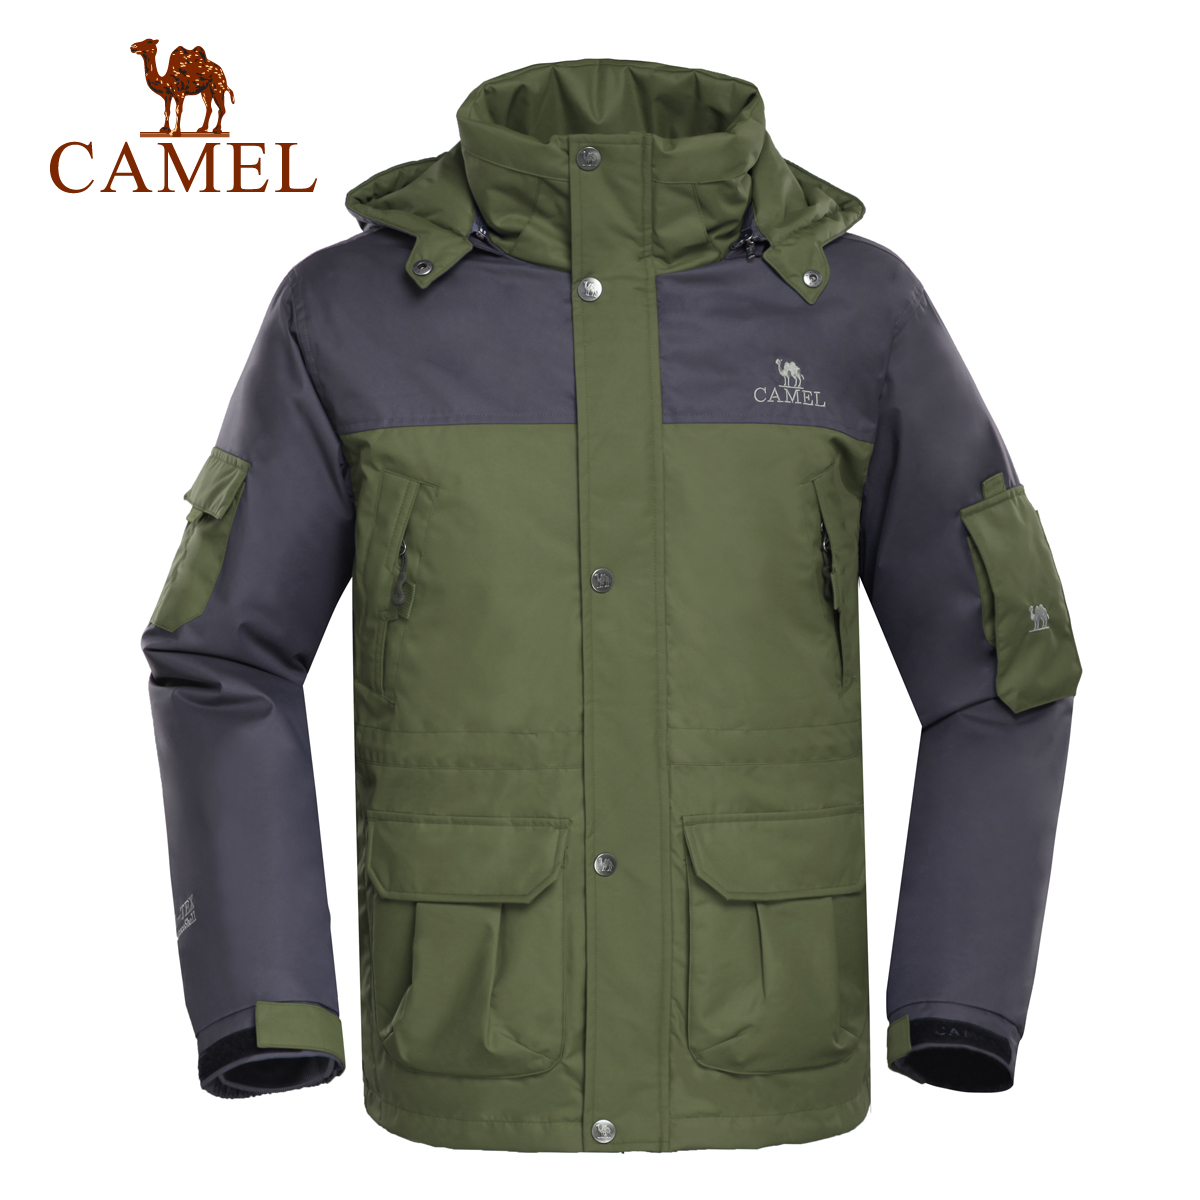 Camel Outdoor Charge Winter Lovers Winter Wind-proof, Waterproof, Down-catching and Warm Mountaineering Clothing Down Clothing